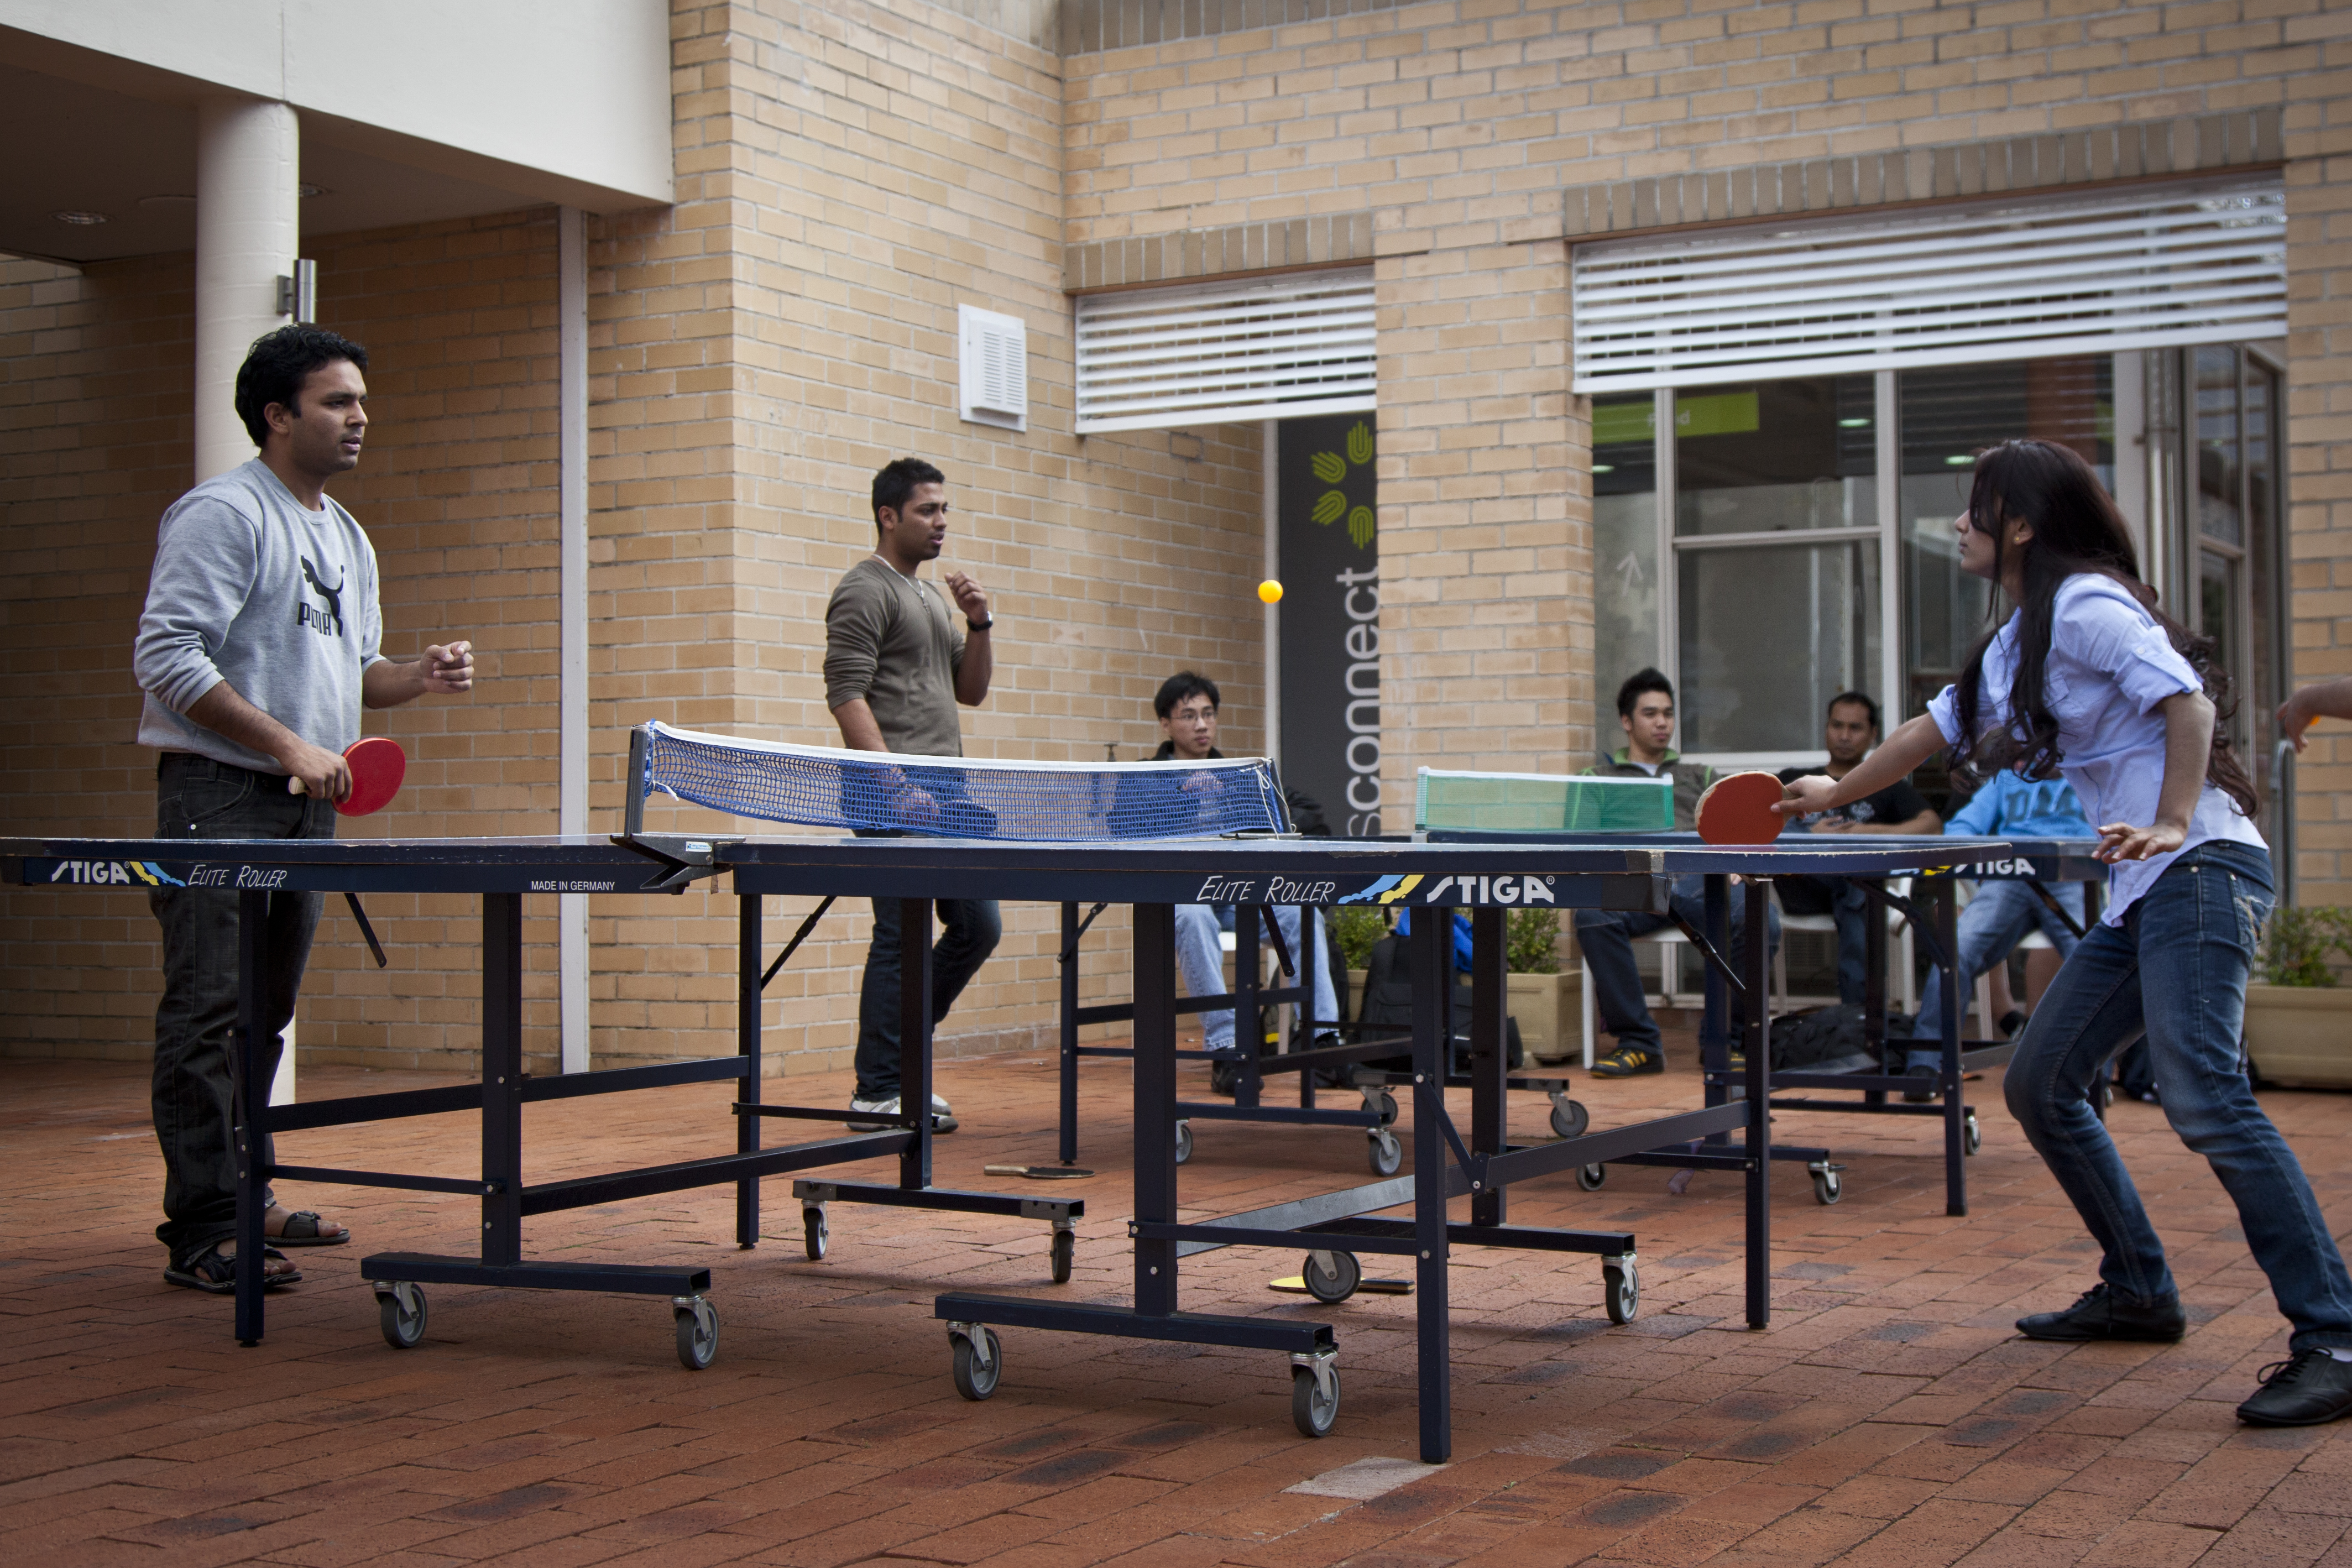 Student life at Western's Campbelltown campus